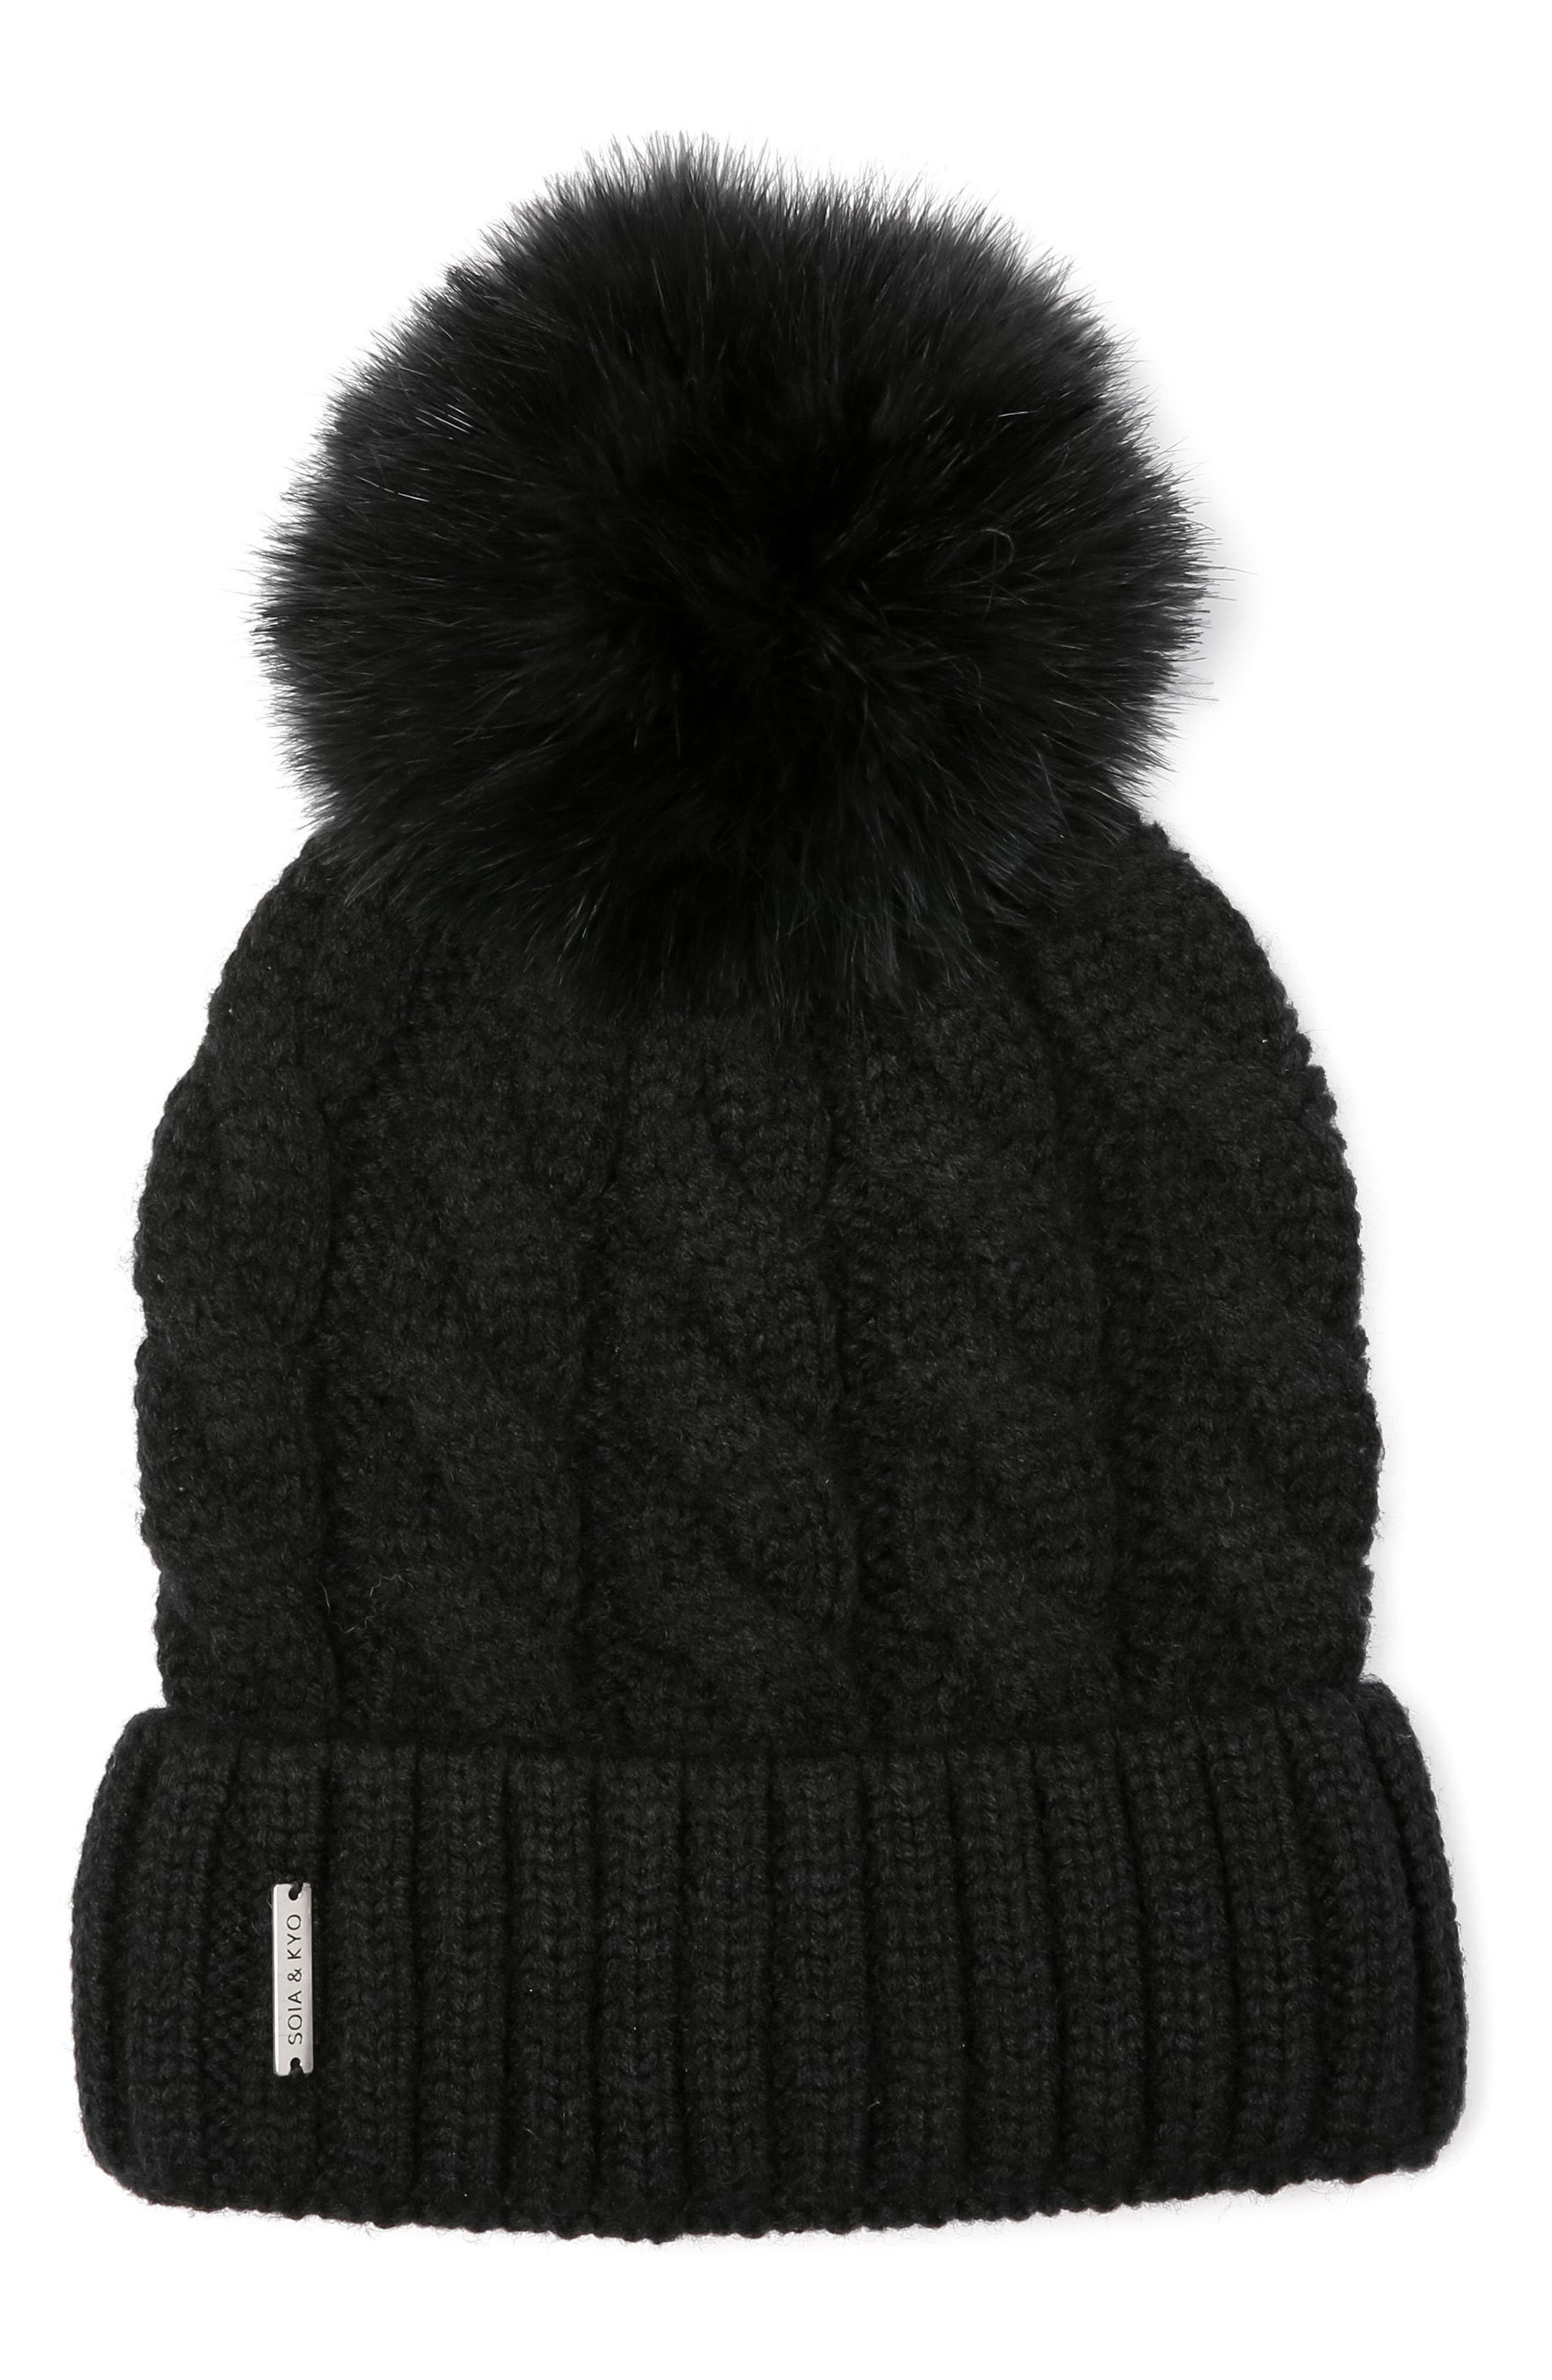 Cable Knit Beanie with Removable Feather Pompom,                         Main,                         color, Black